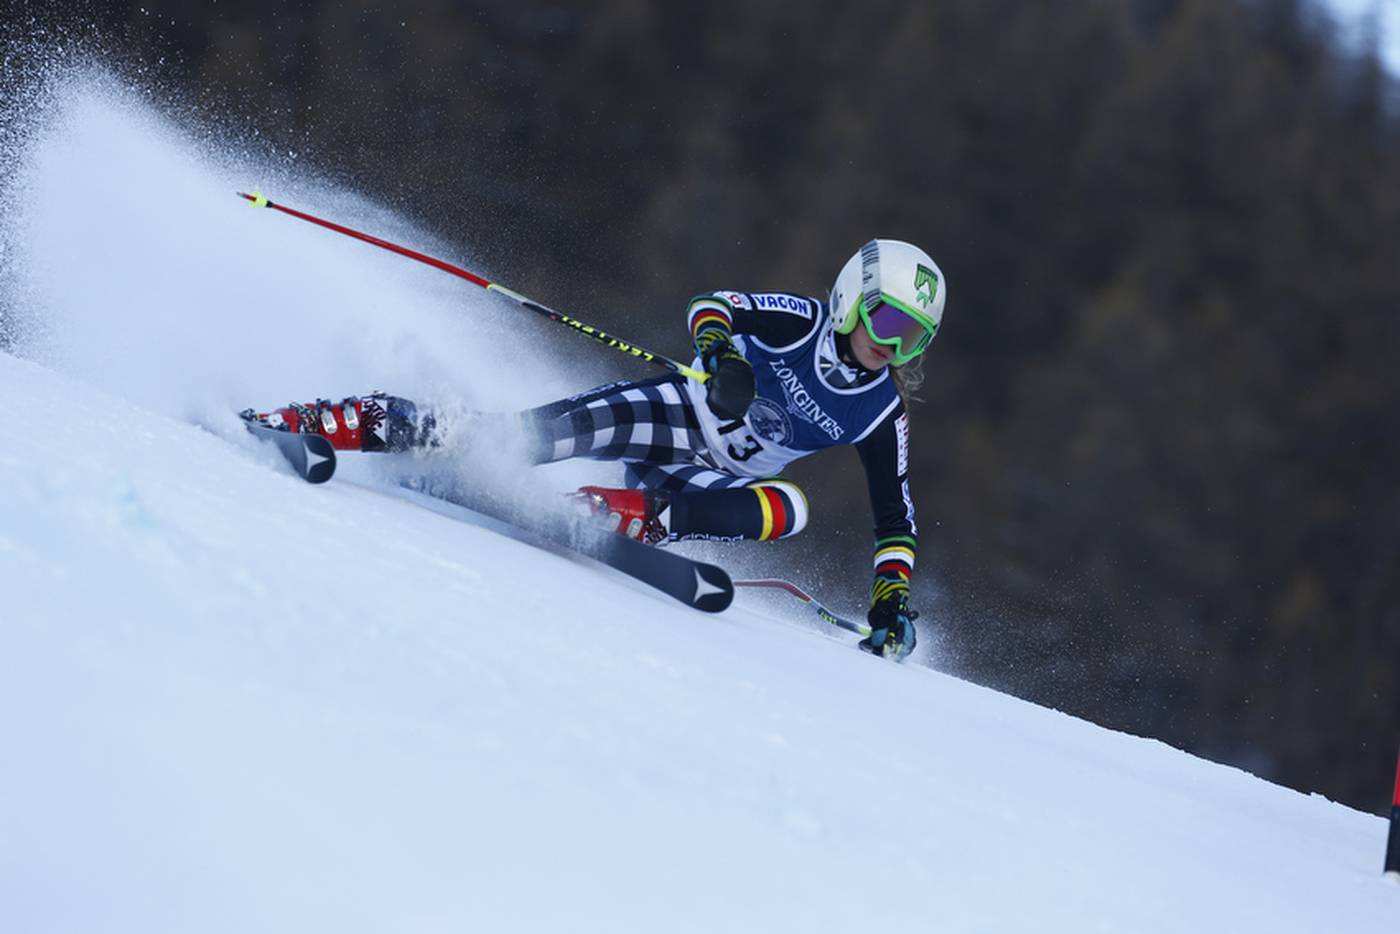 Longines Alpine Skiing Event: Second edition of the Longines Future Ski Champions – A successful 100% female competition in Val d'Isère 21